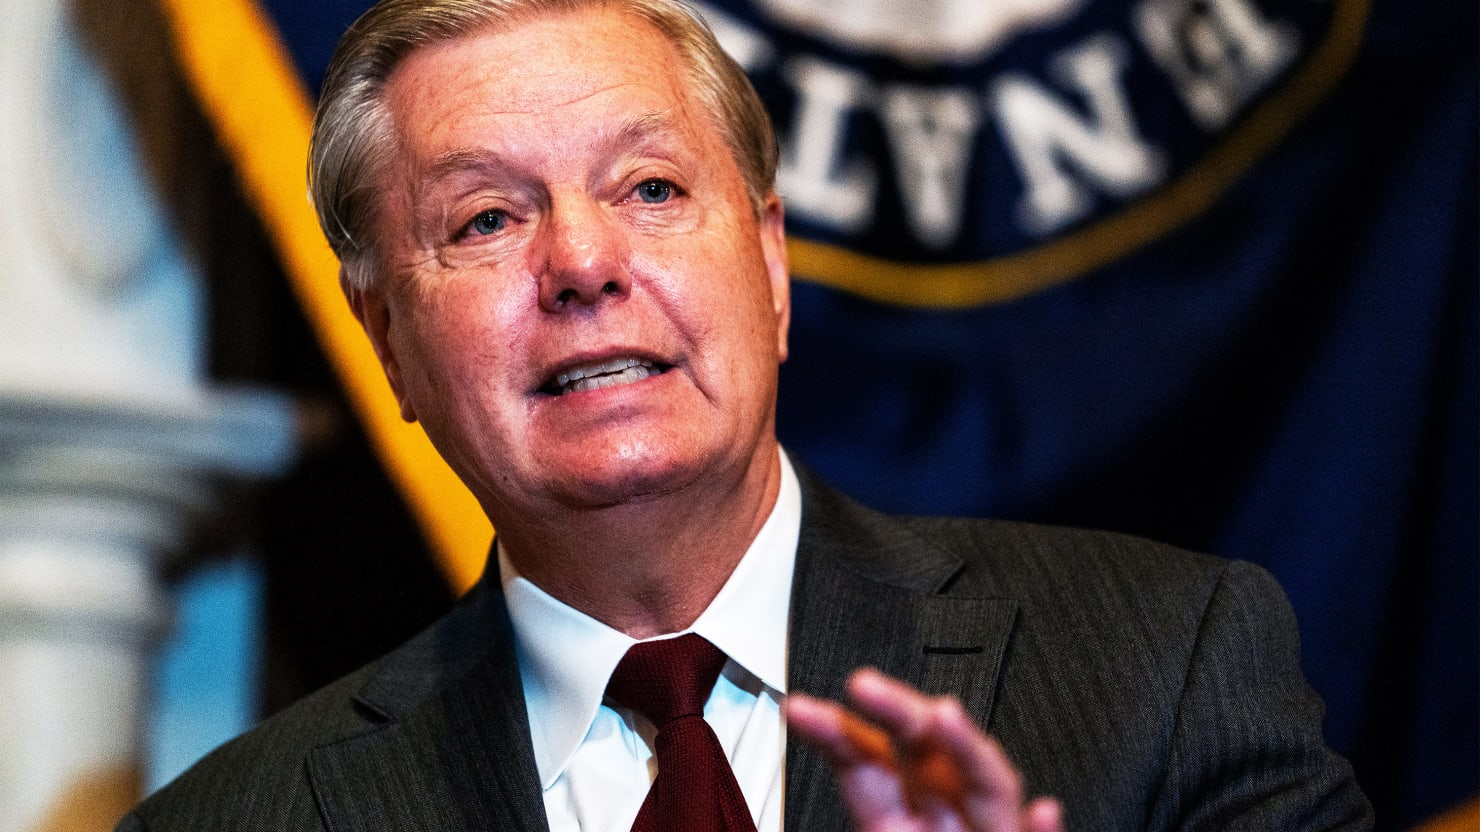 Lindsey Graham on Spreading Potential Russian Disinformation: It Doesn't Matter If It's True